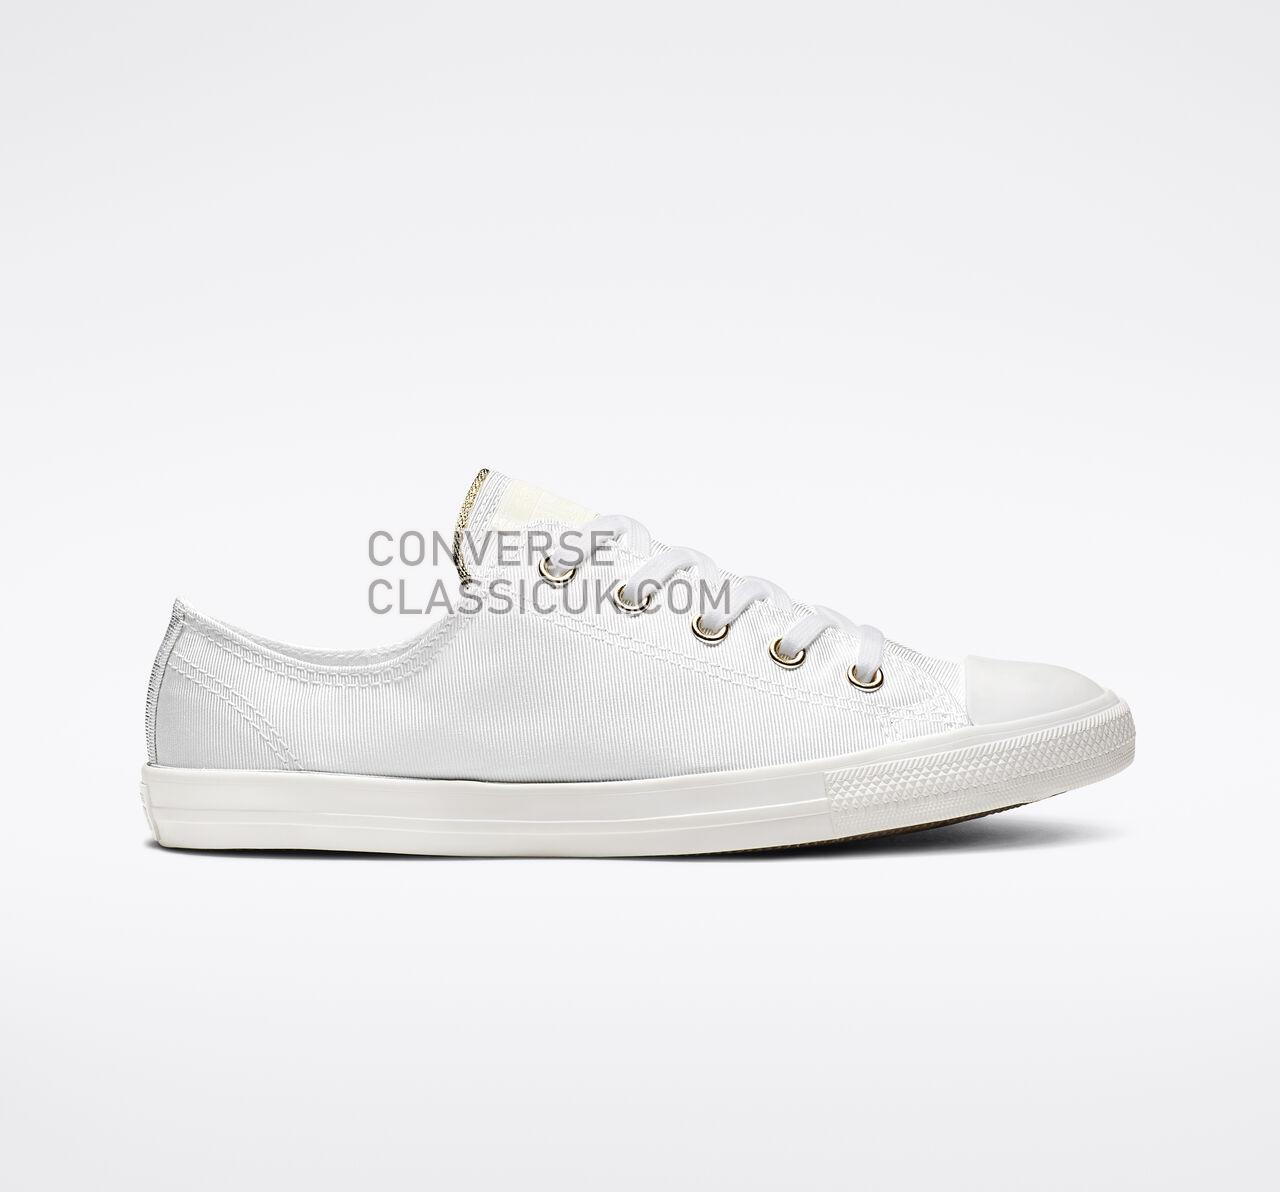 Converse Chuck Taylor All Star Dainty Low Top Womens 564309F White/Egret/Light Gold Shoes